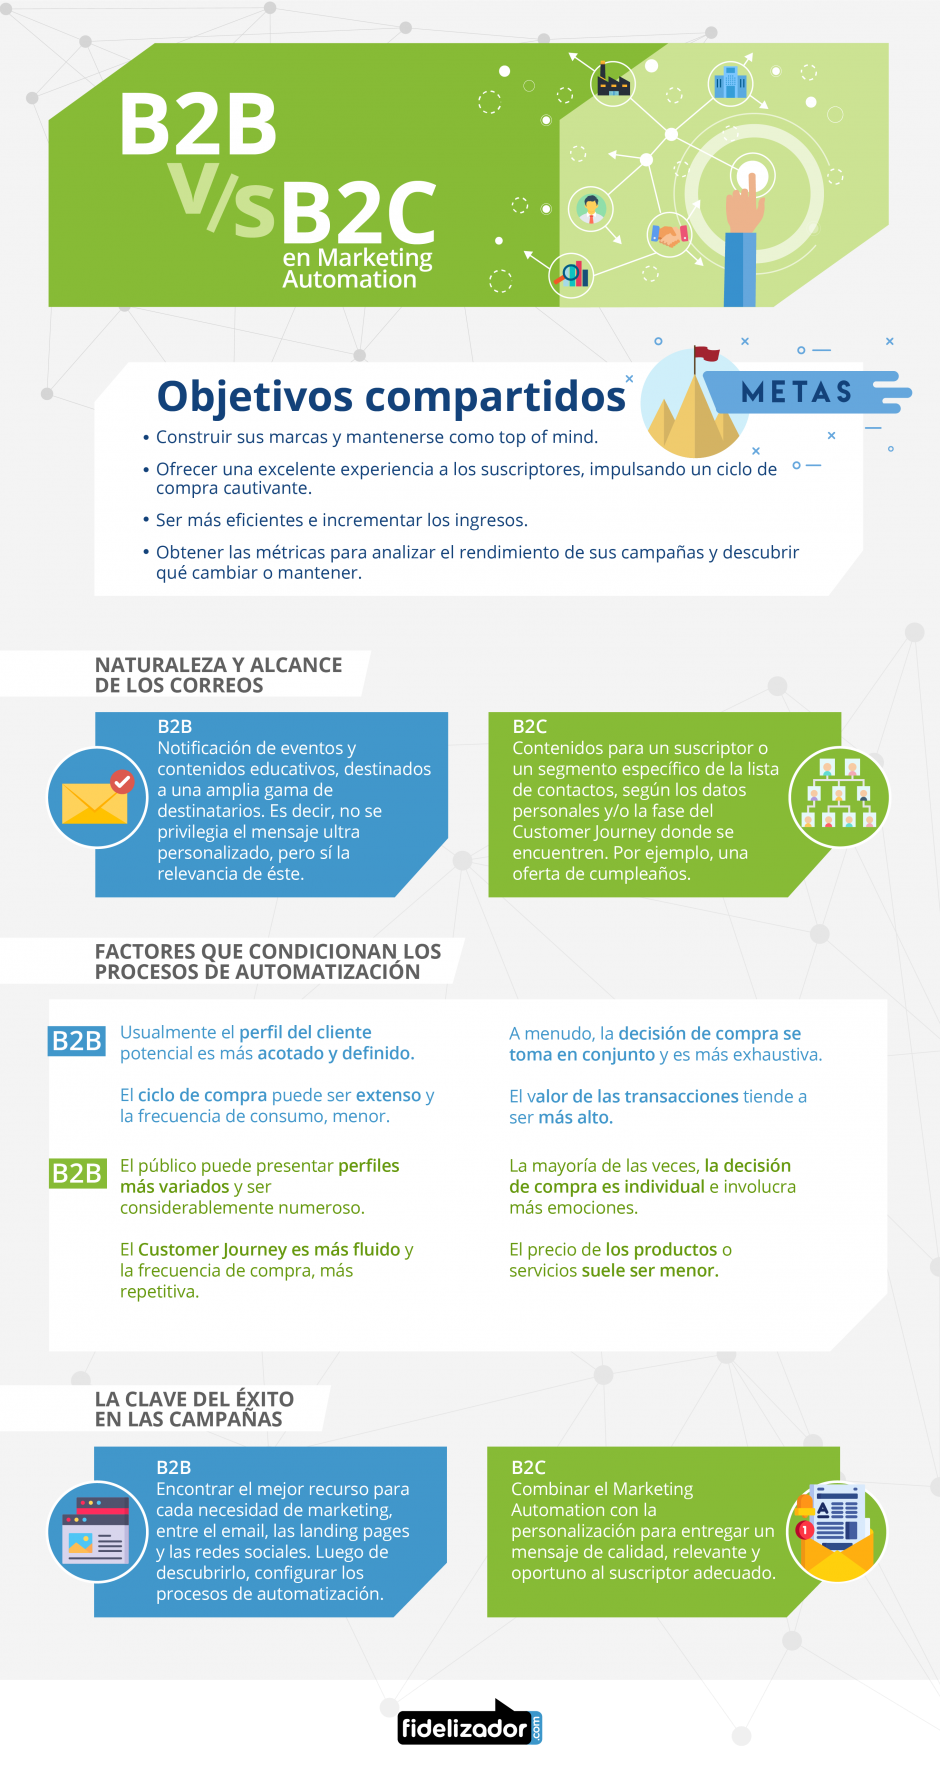 Diferencias entre B2B y B2C en Marketing Automation